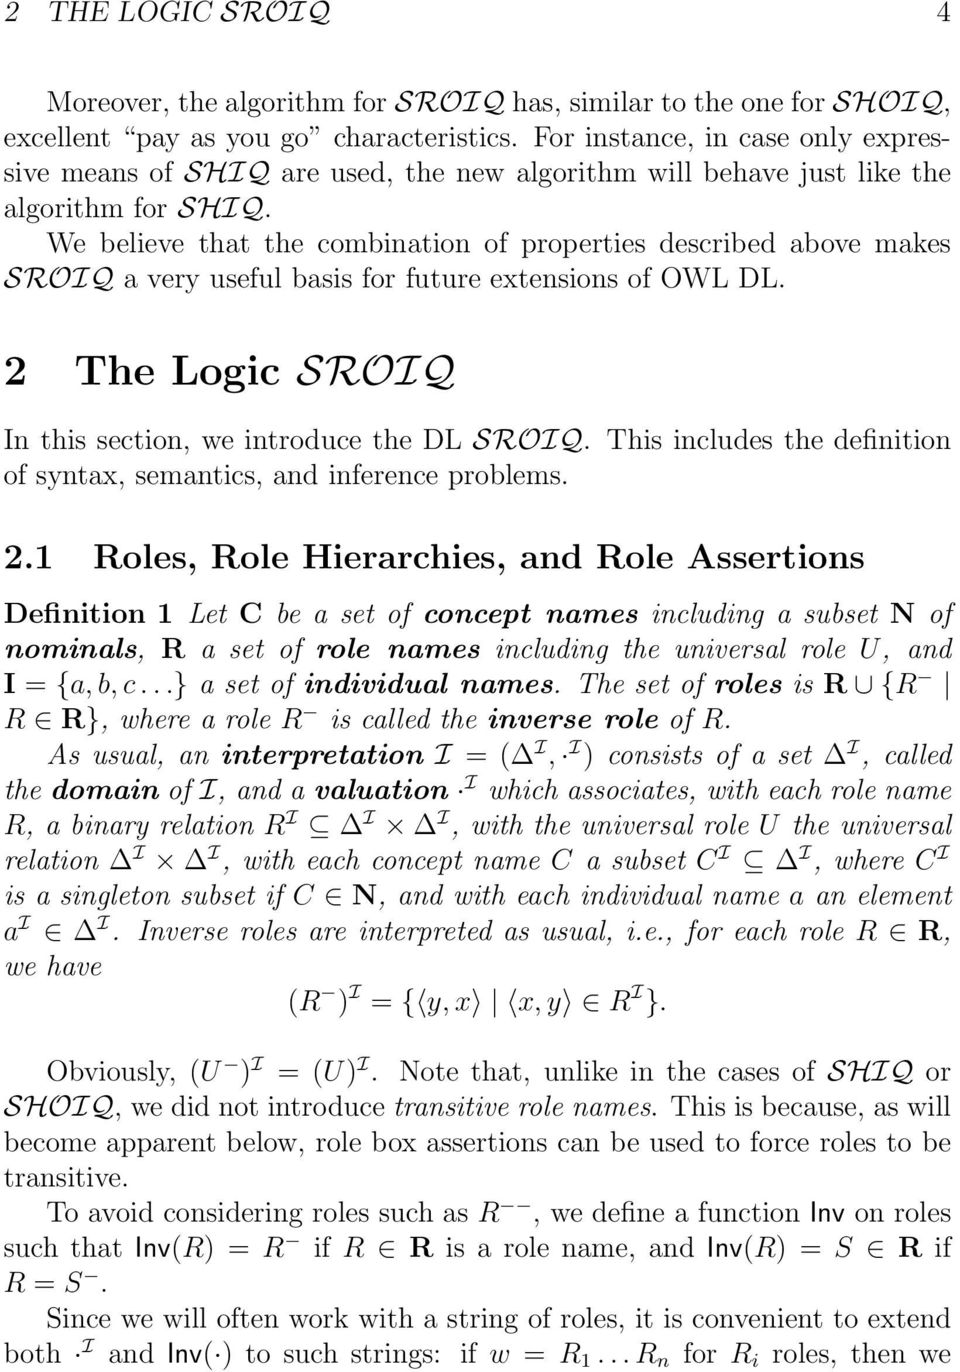 In this section, we introduce the DL SROIQ This includes the definition of syntax, semantics, and inference problems 21 Roles, Role Hierarchies, and Role Assertions Definition 1 Let C be a set of